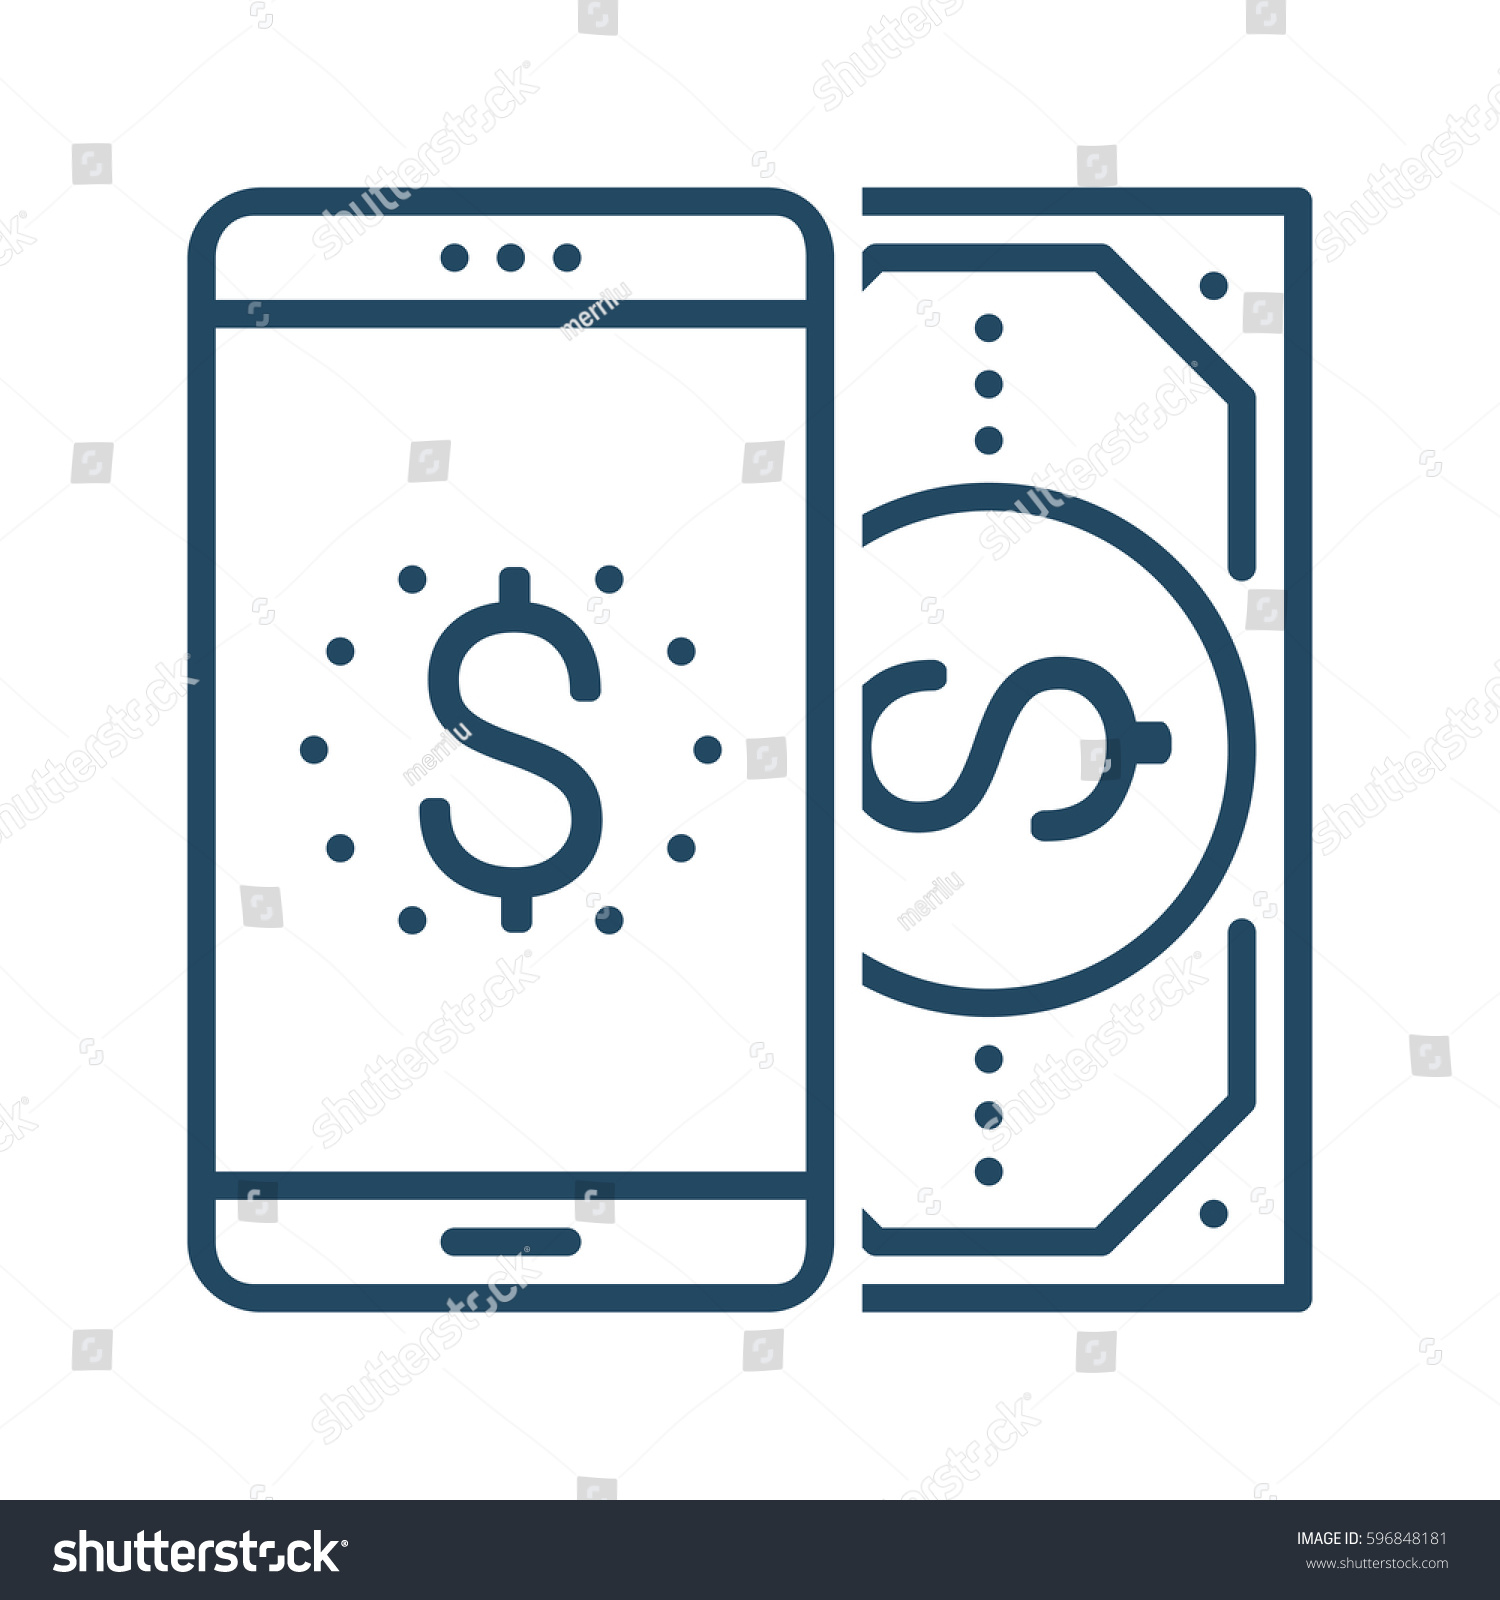 Mobile Phone Dollar Bill Vector Icon Stock Vector 596848181